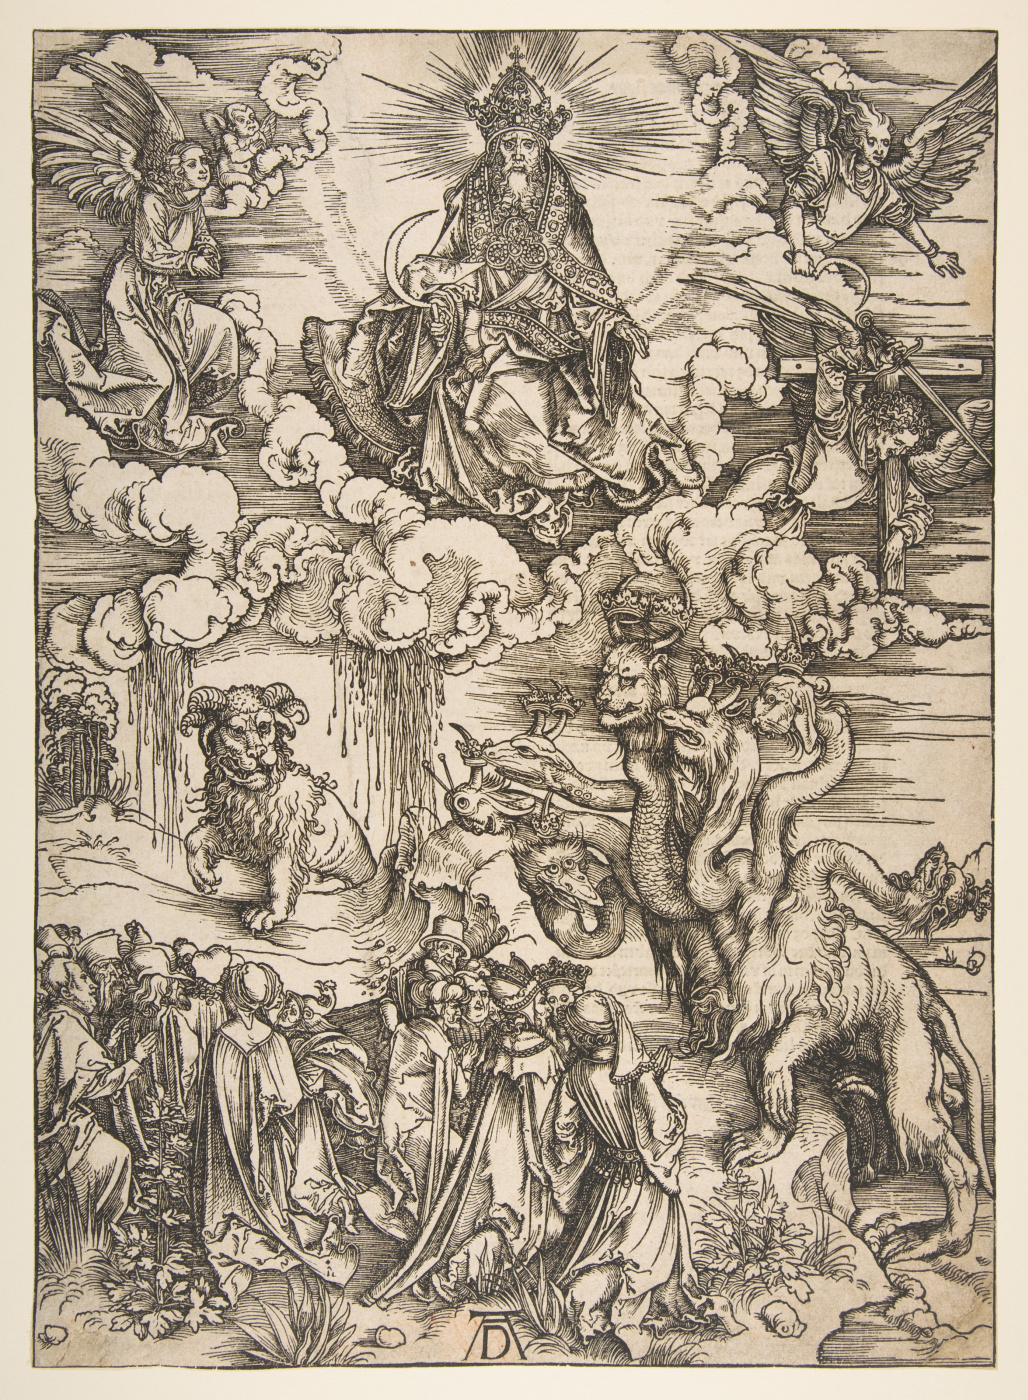 Albrecht Dürer. The seven-headed dragon and the horned beast